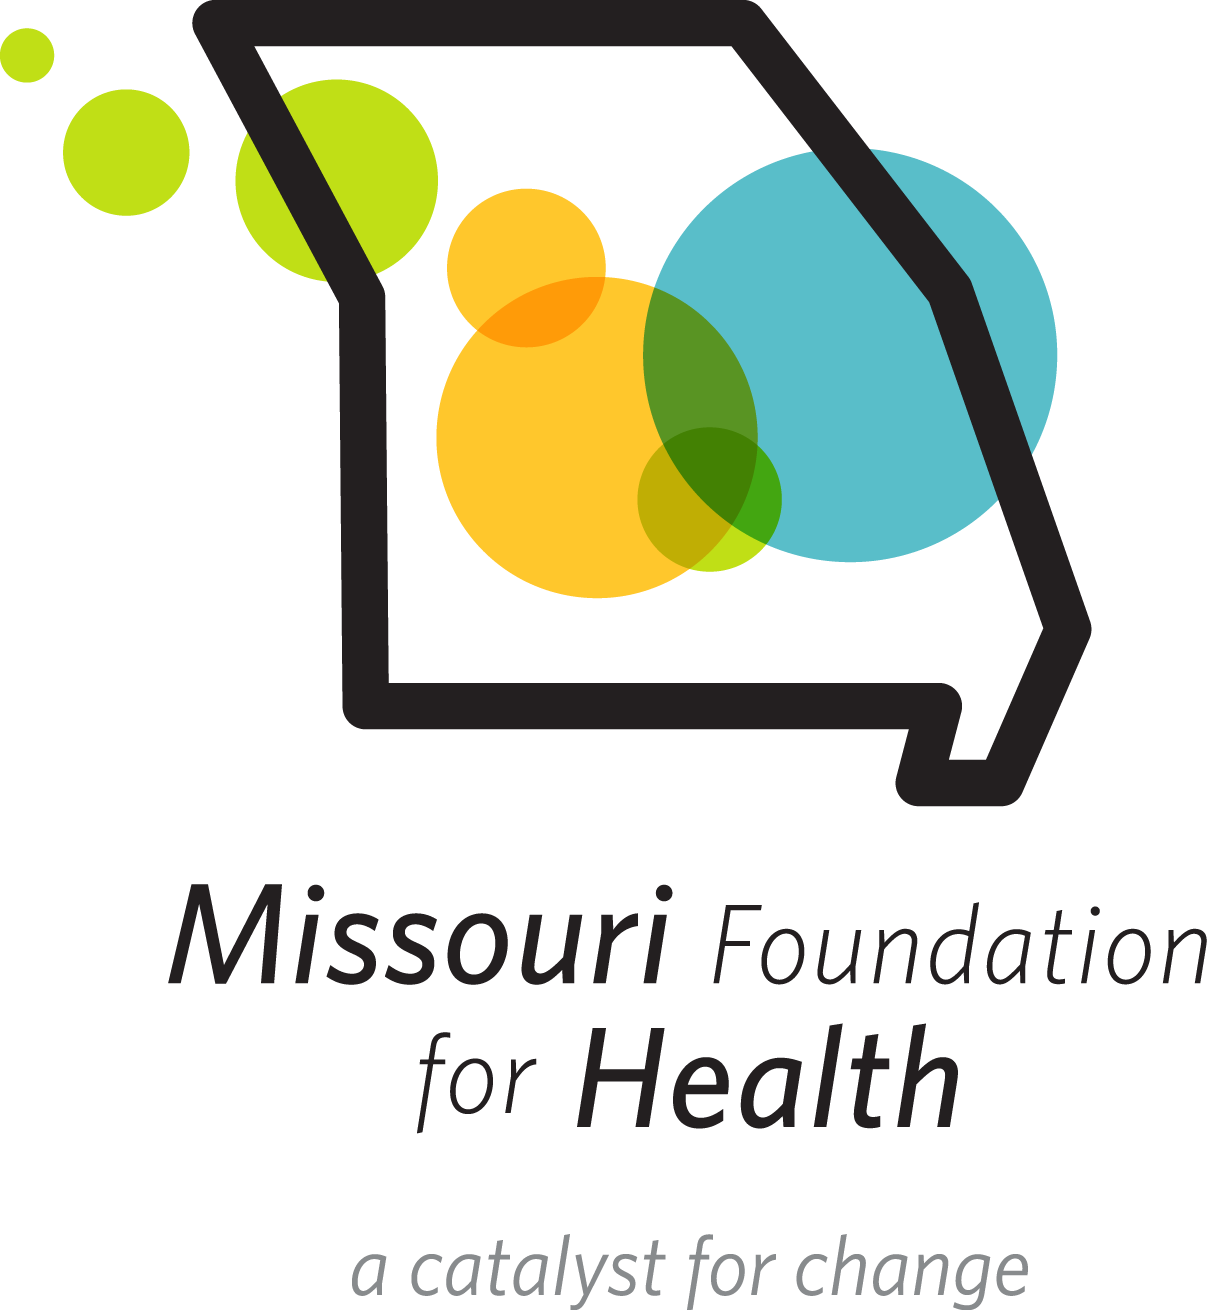 How to change the color of a png logo. Logos messaging missouri foundation